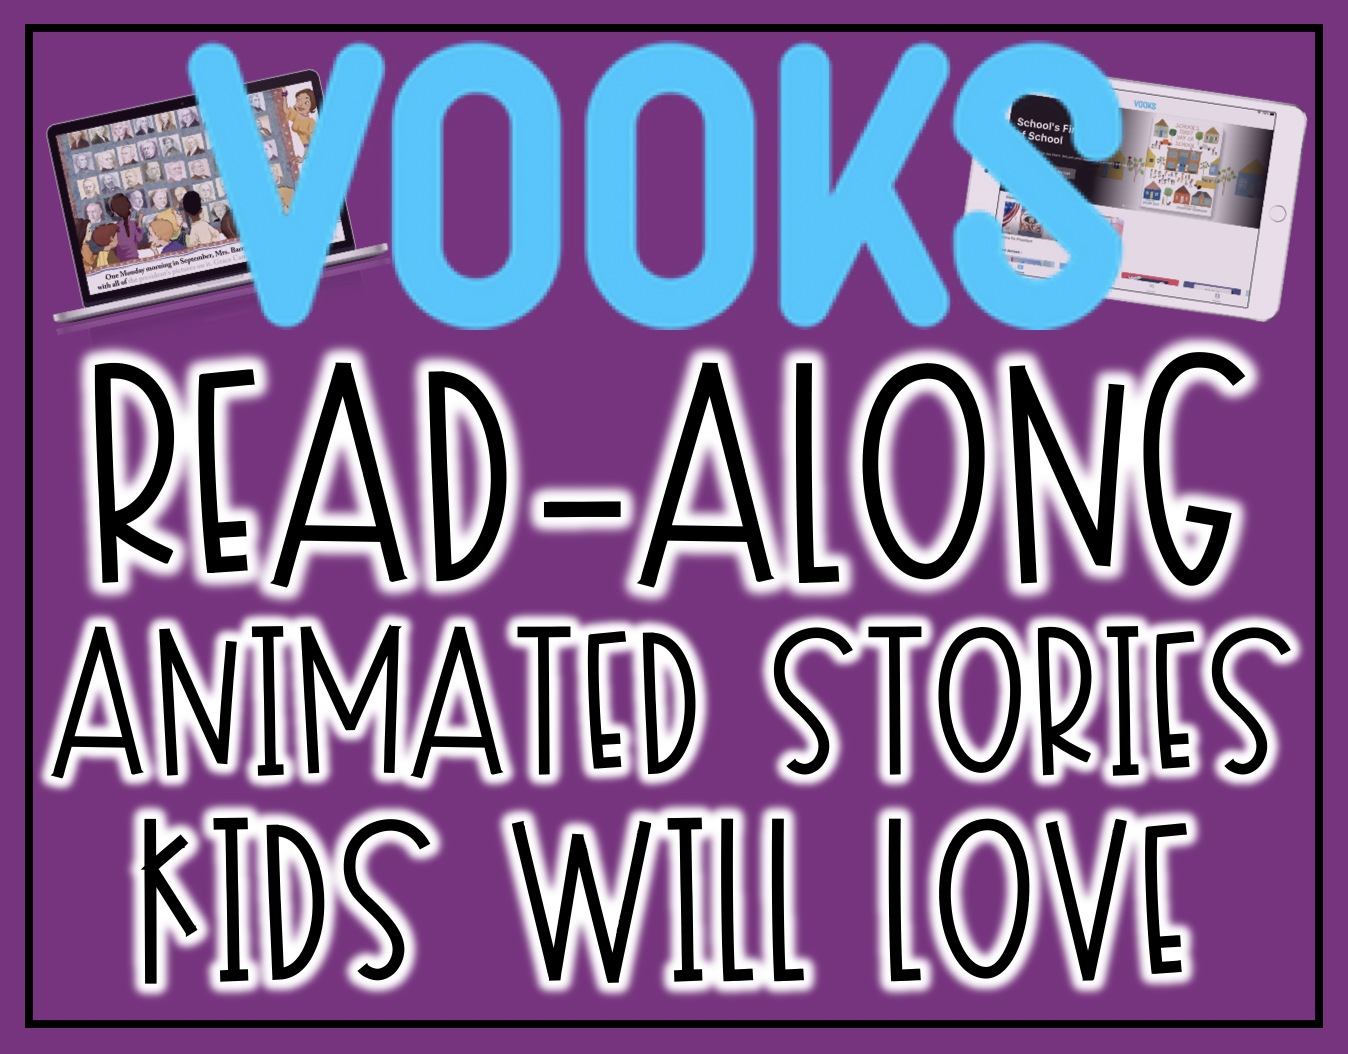 Vooks: Read Alond Animated Storybooks Kids Will Love. These stories for kids aged 2-8 can be viewed on Chromebooks, laptops, computers, ipads and other tablets!